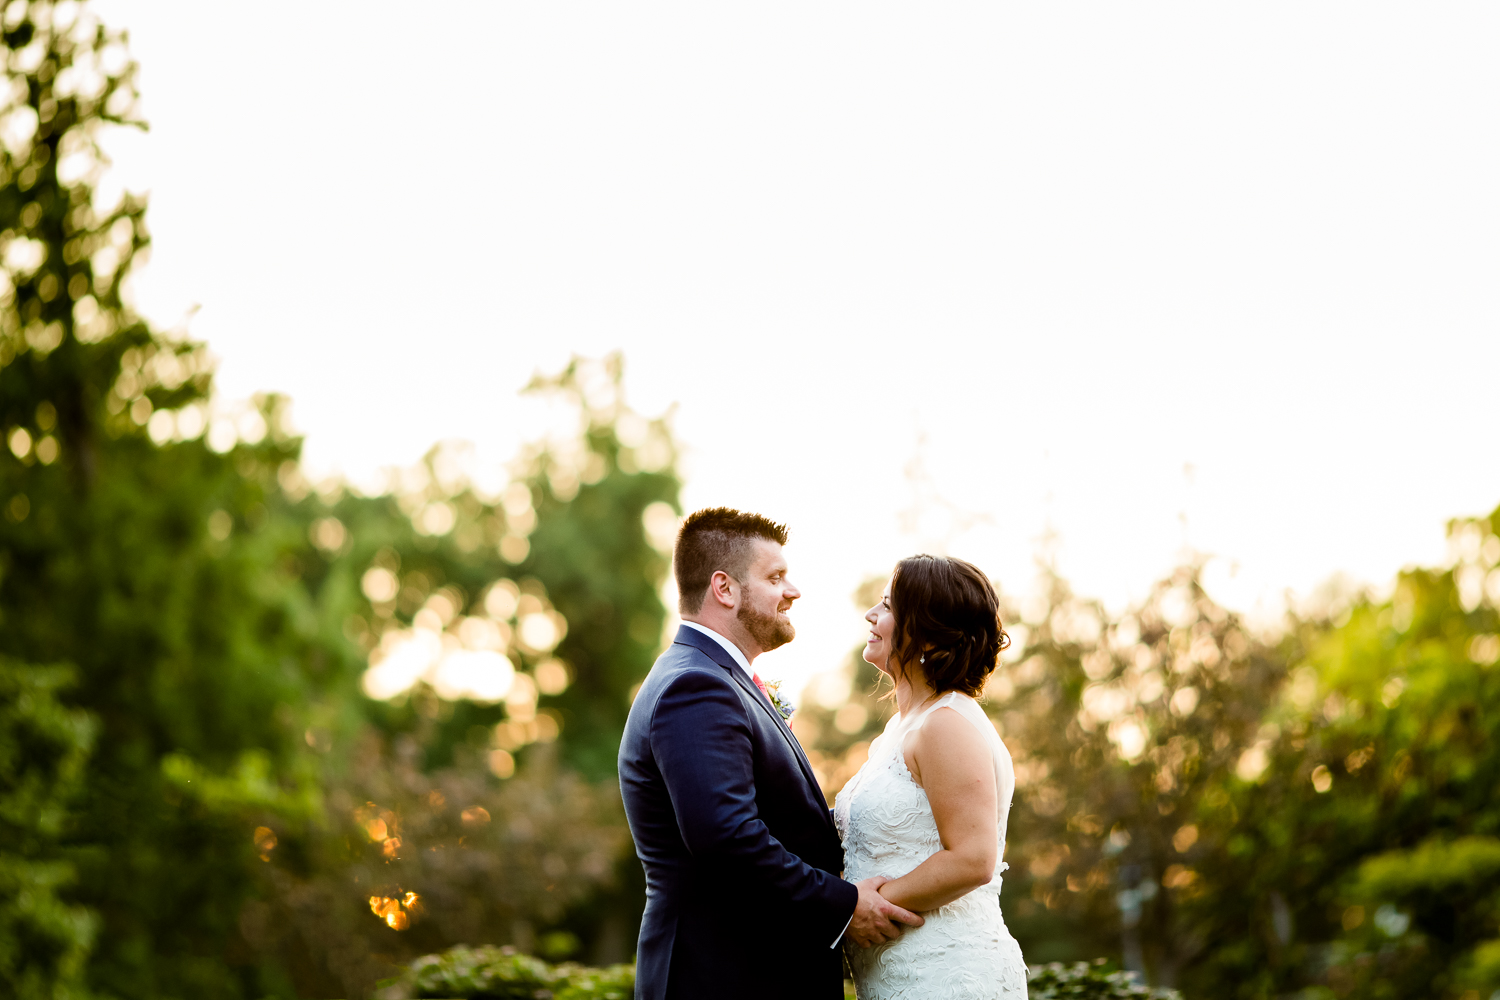 Belhurst Castle wedding photo at sunset.